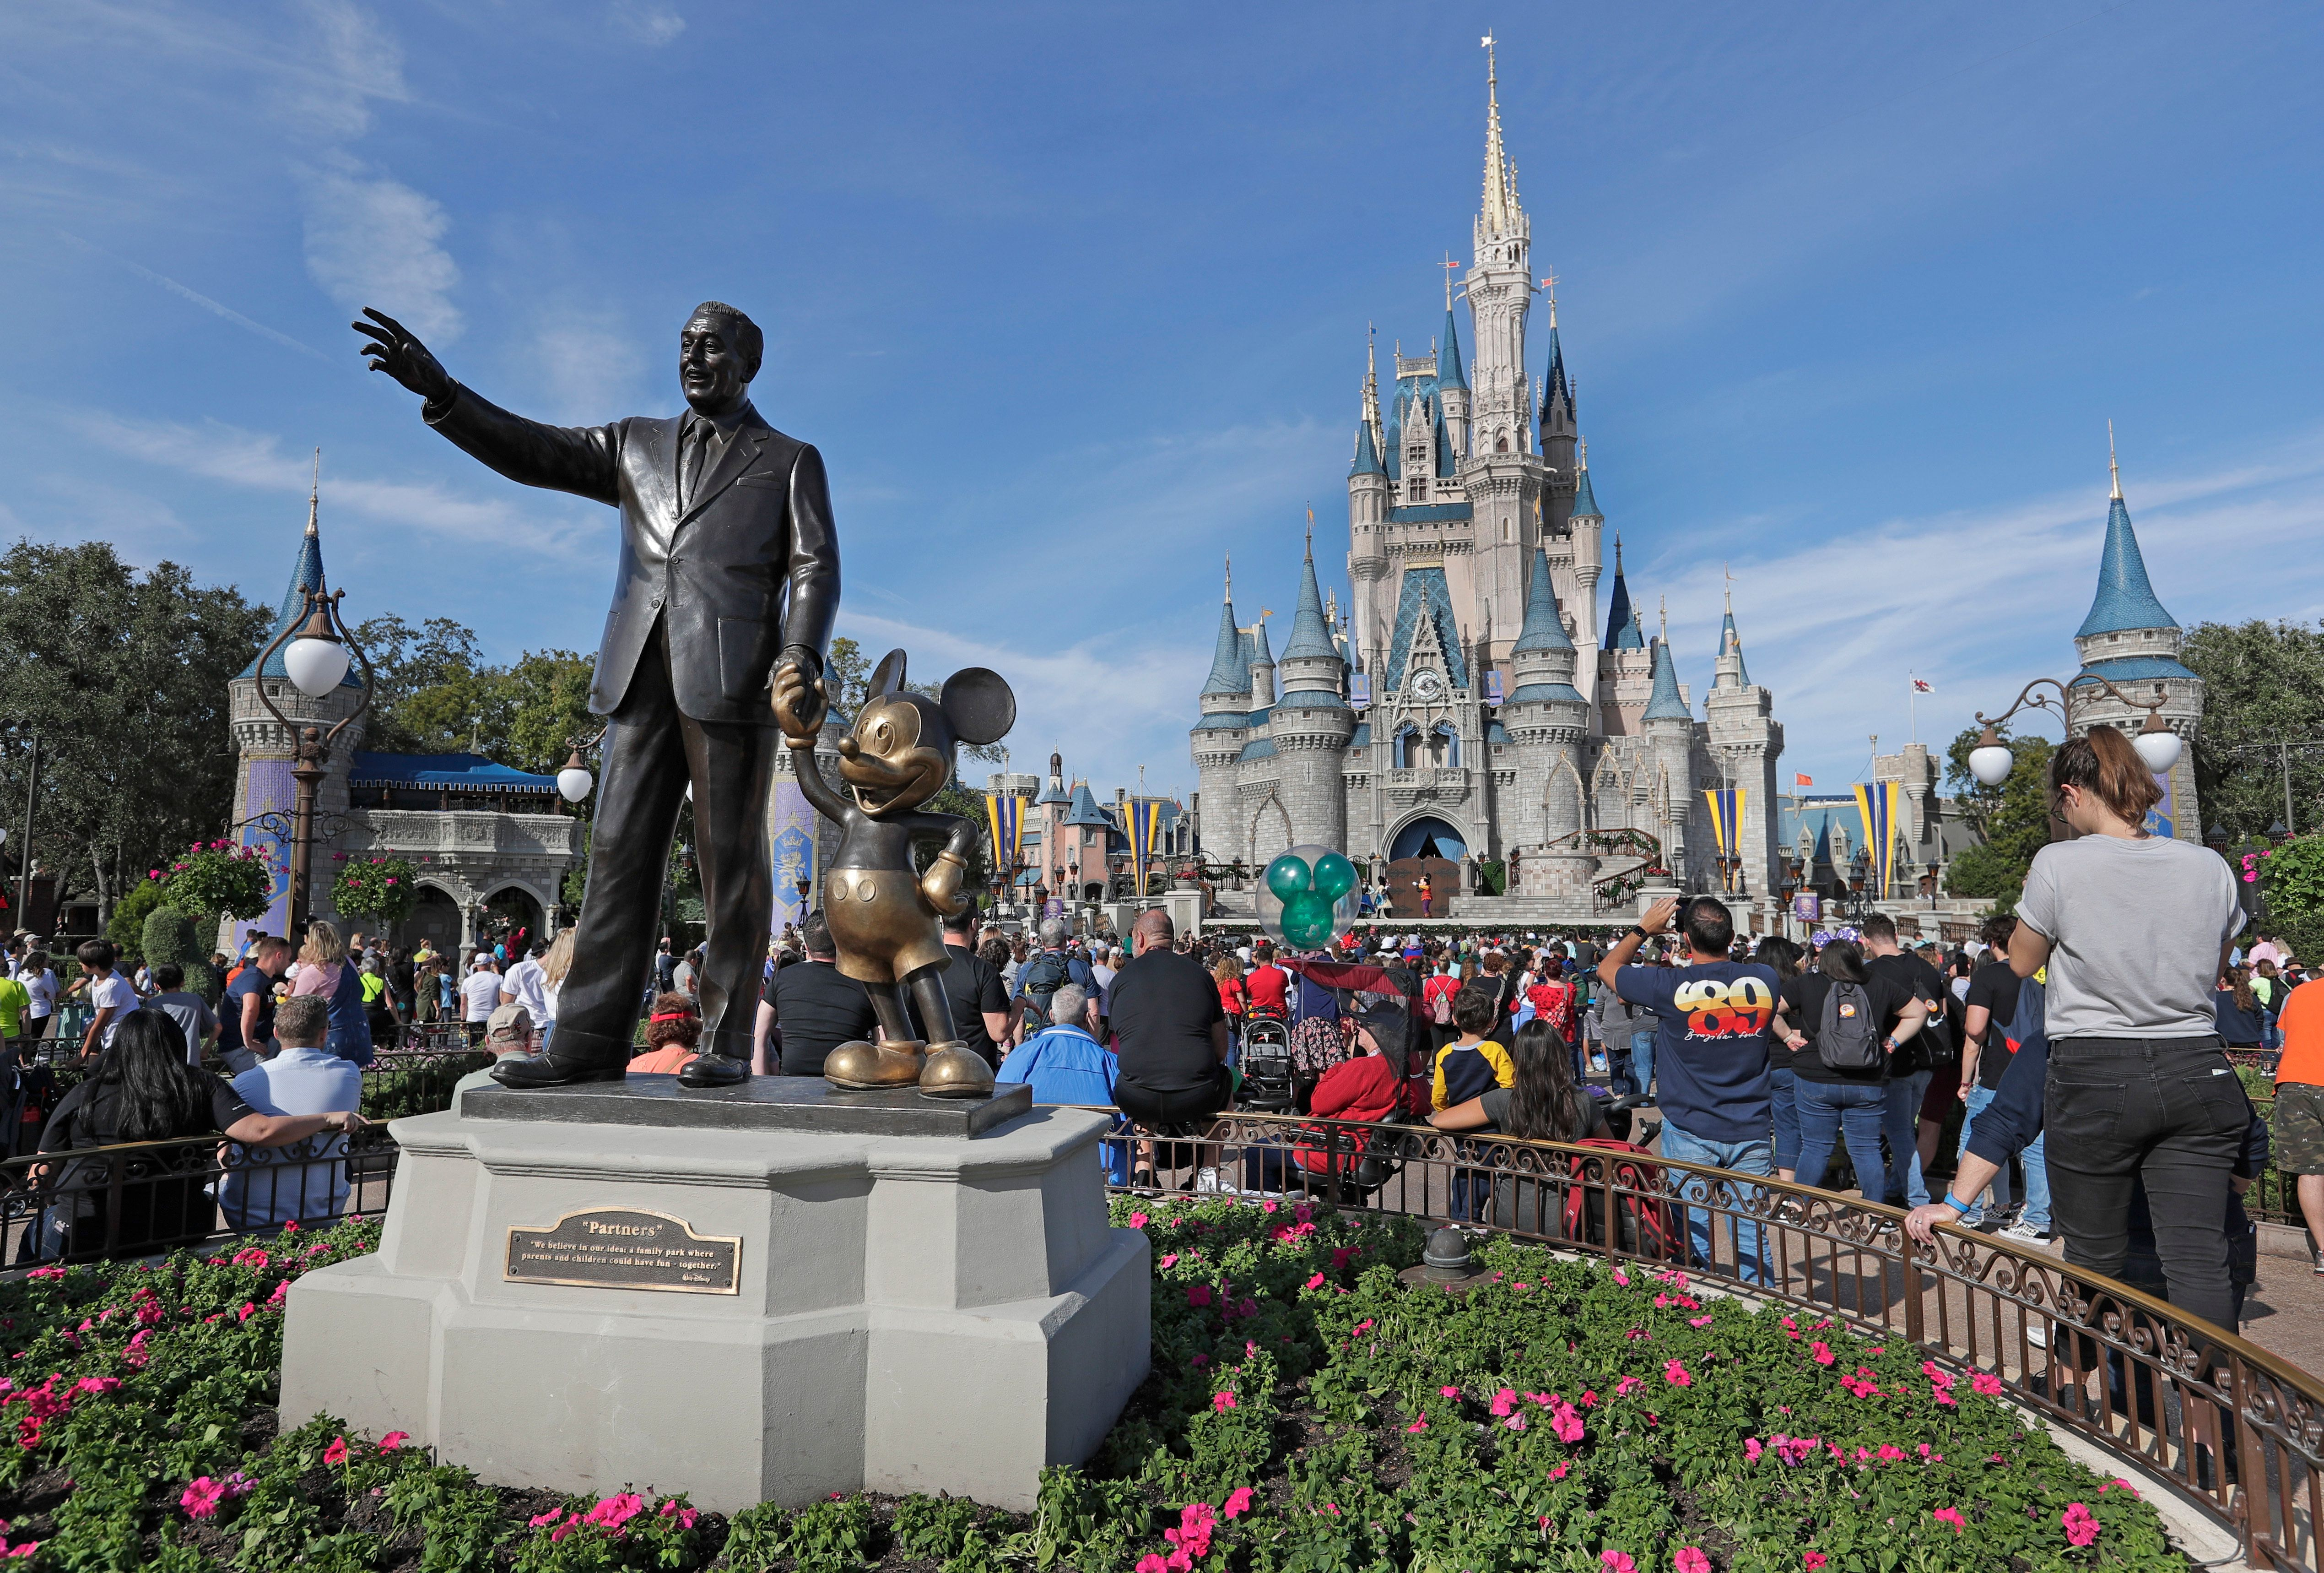 In this Wednesday, Jan. 9, 2019 photo near a statue of Walt Disney and Micky Mouse, guests at watch a show in front of the Cinderella Castle at the Magic Kingdom at Walt Disney World in Lake Buena Vista, Fla. (AP Photo/John Raoux)